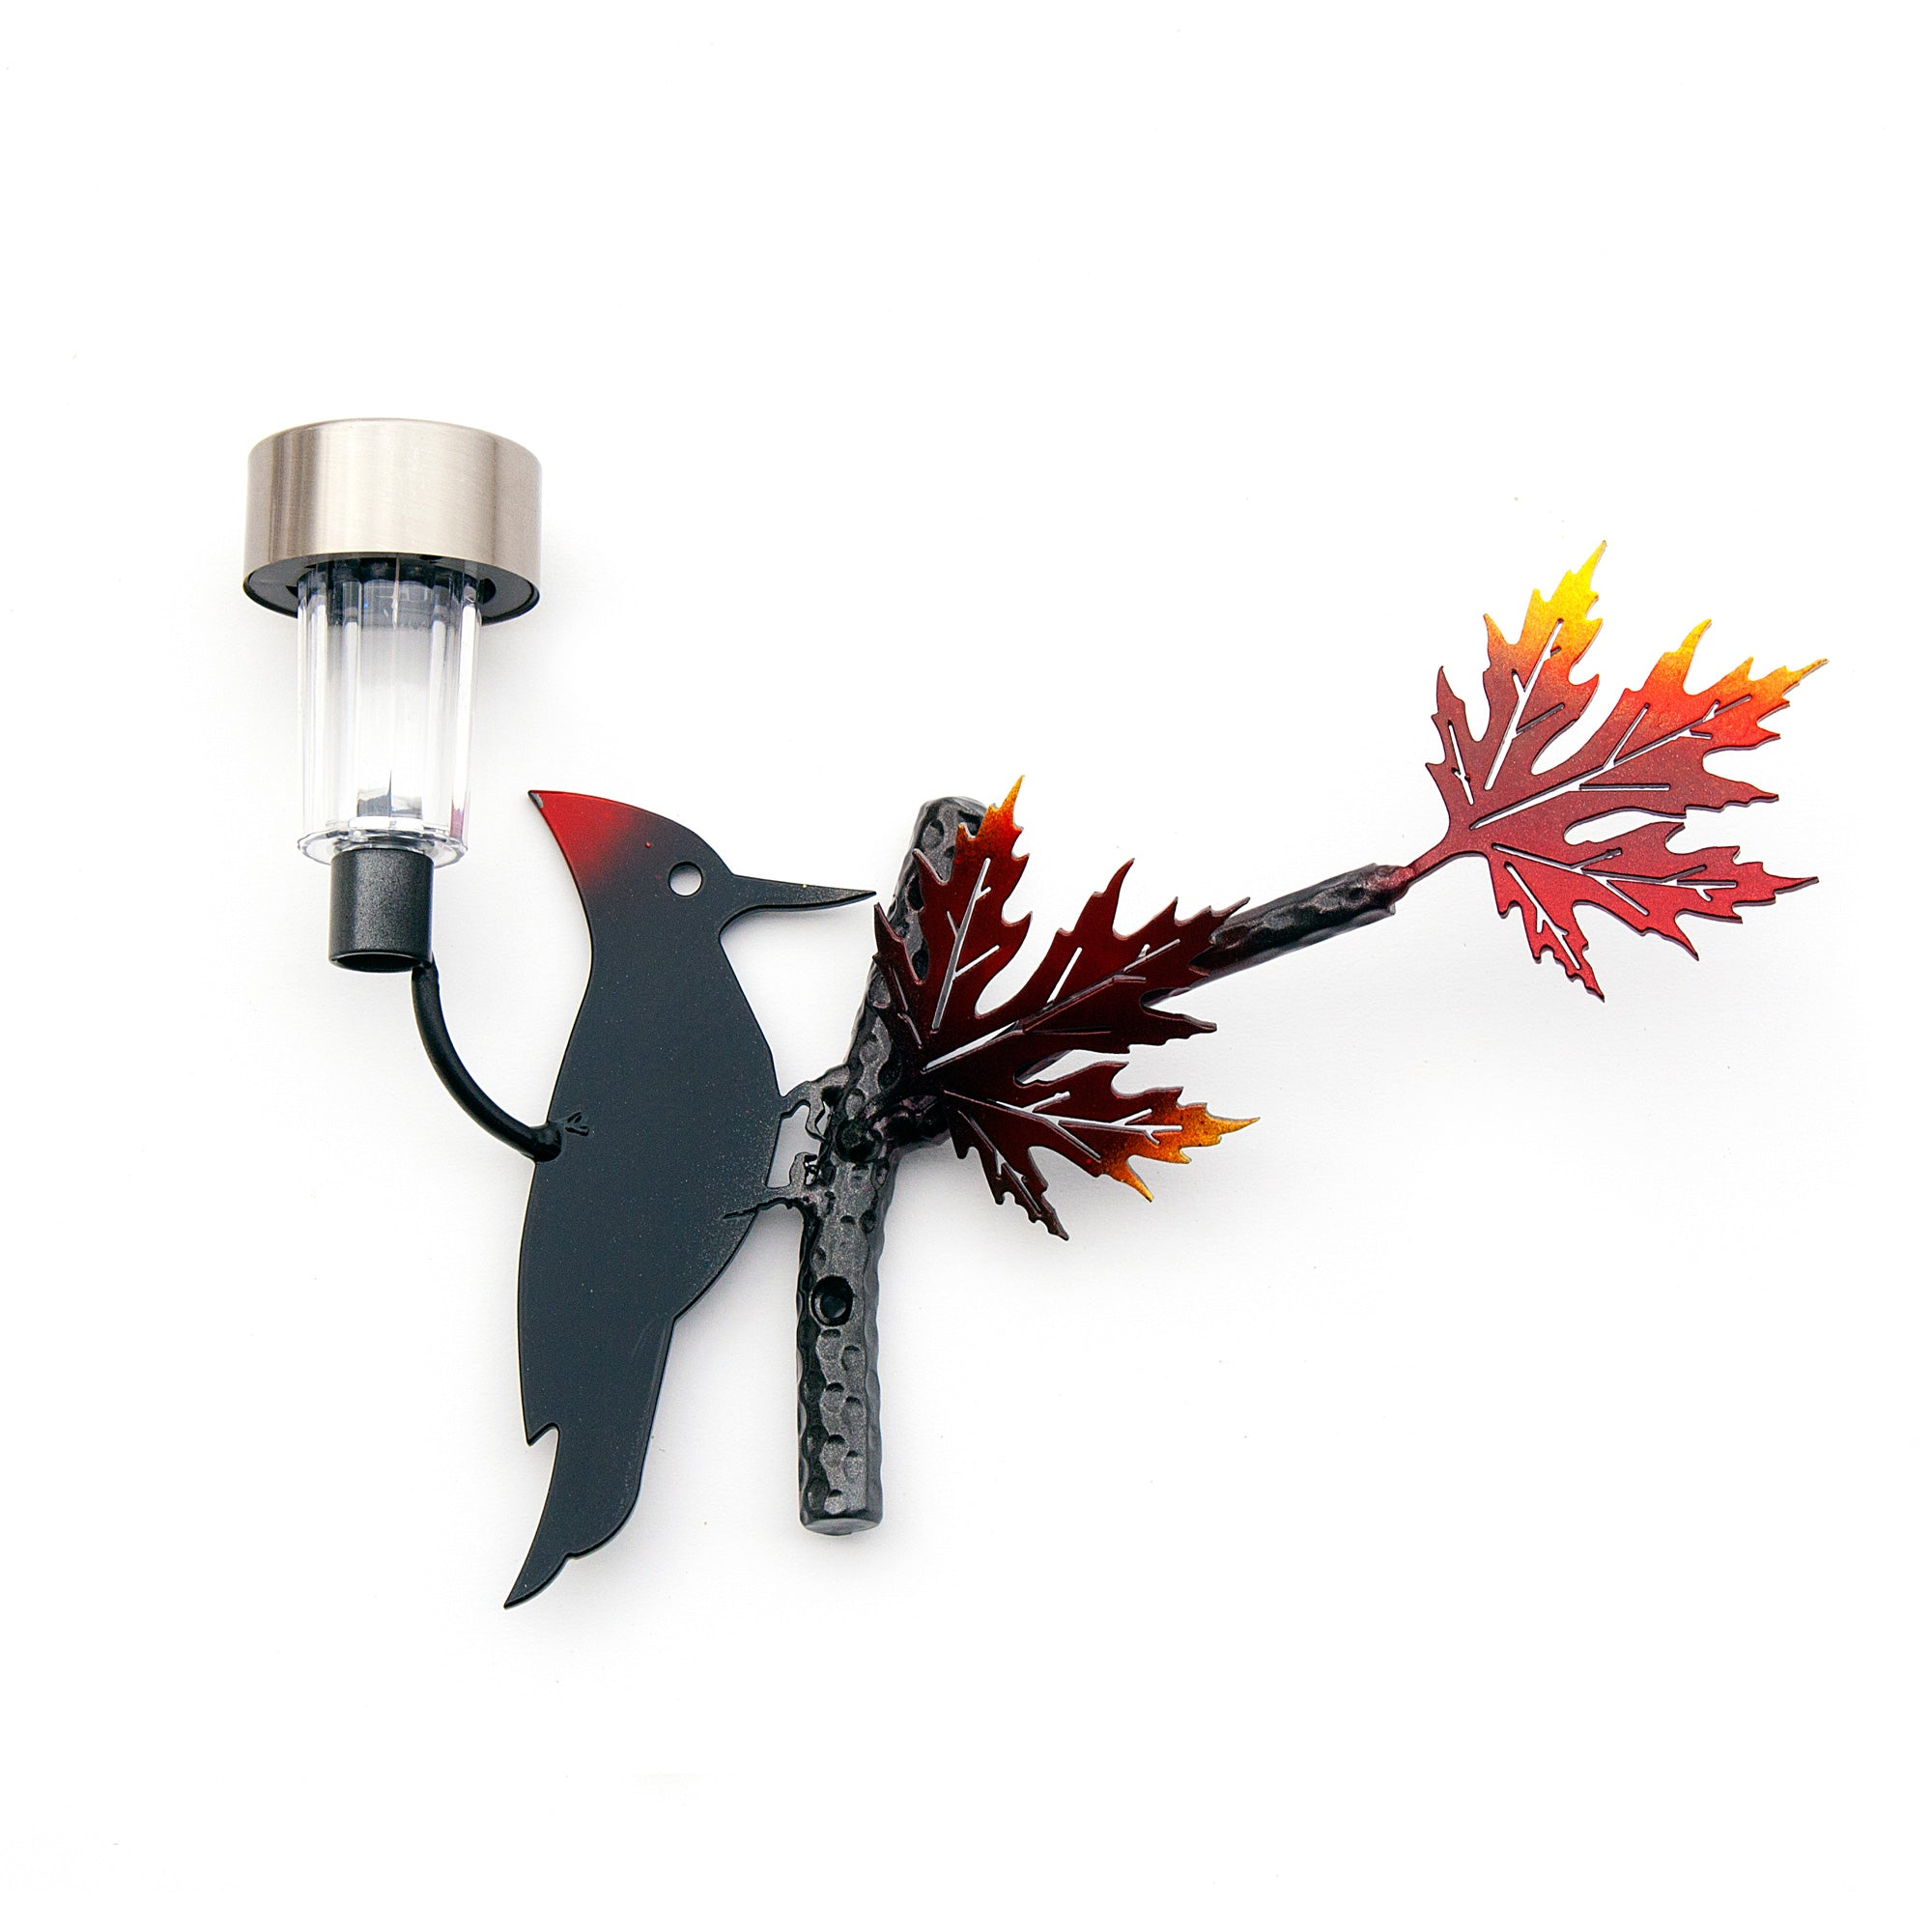 Woodpecker Wall Art Metal Bird for Home Garden Decor & Outdoor Decor Art